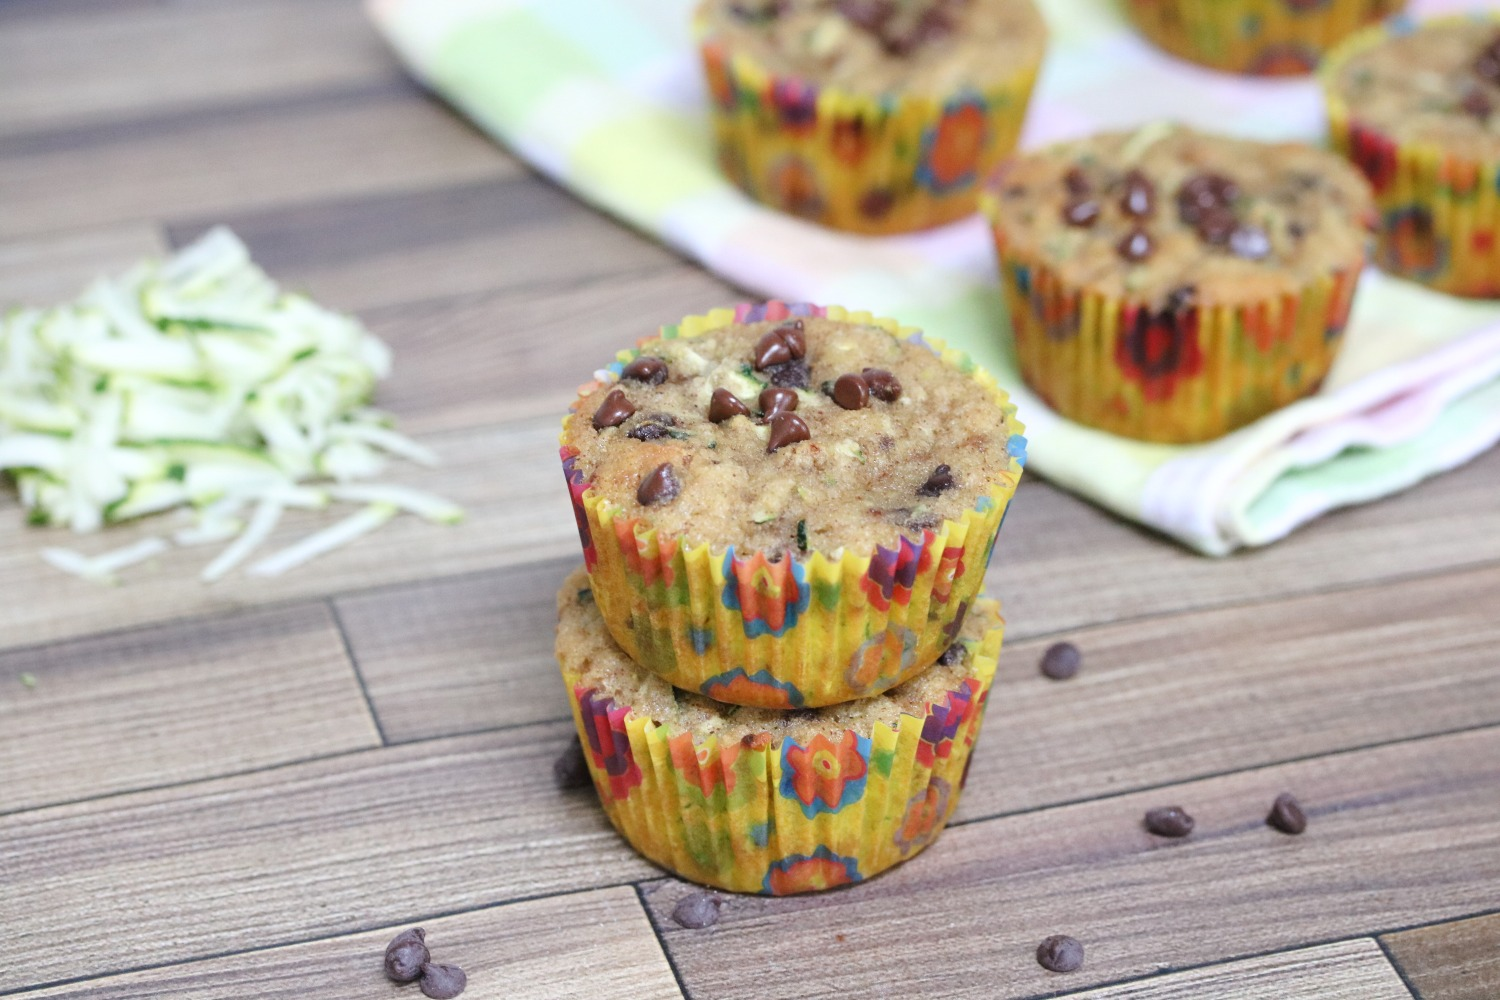 Two chocolate chip muffins stacked with shredded zucchini behind them and more muffins on a linen